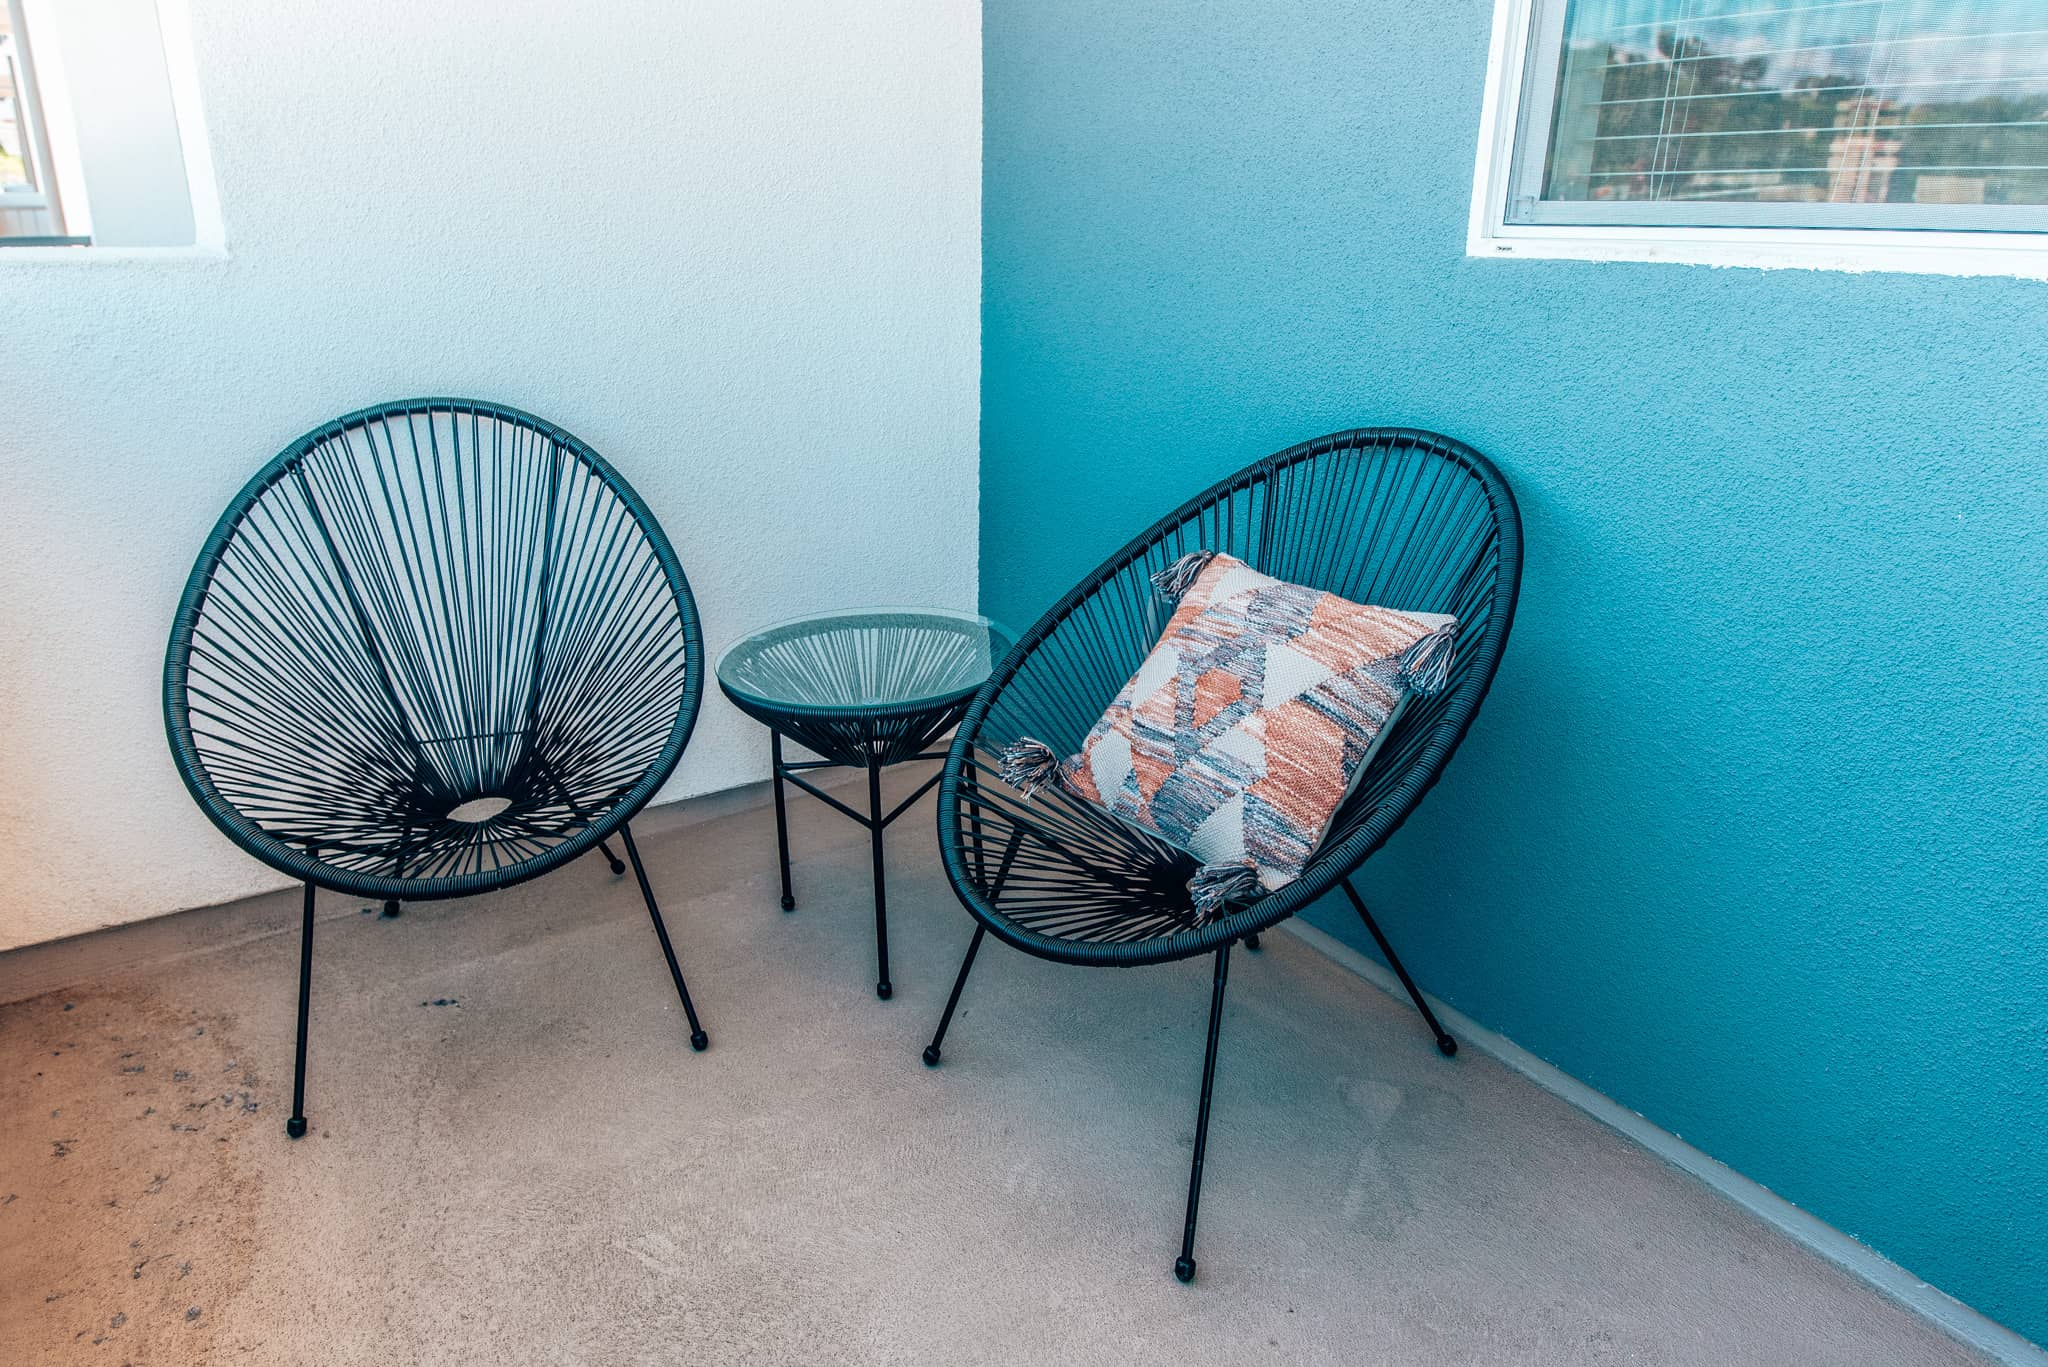 2 chairs on terrace